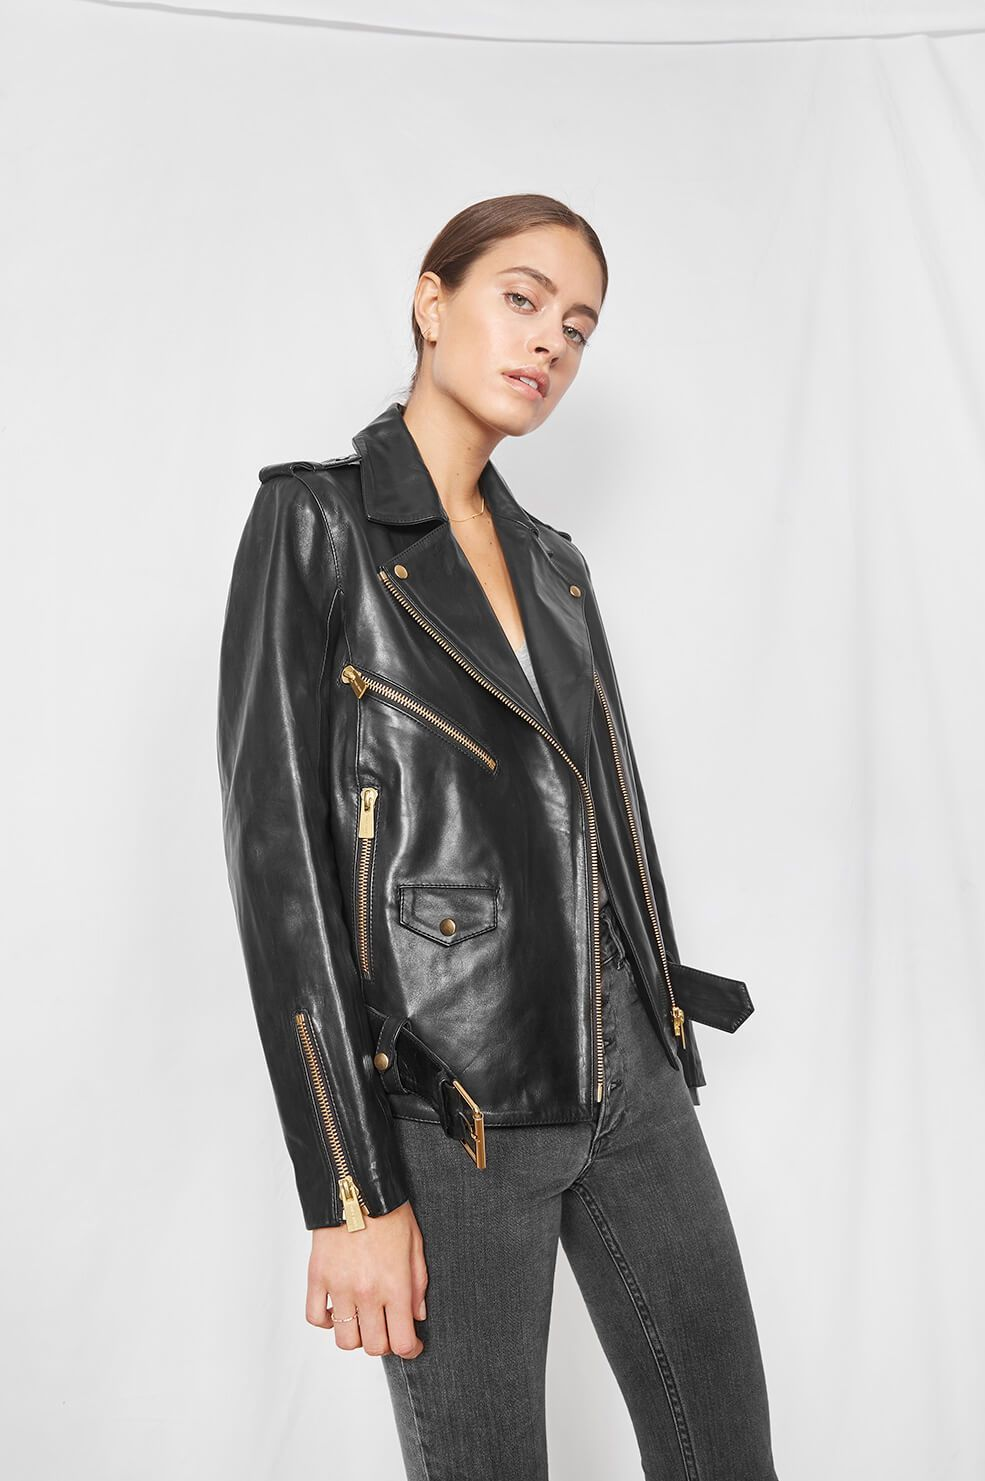 Anine Bing Vintage Leather Jacket, €899 - There's really nothing not to love about Anine Bing, from the down-to-earth creator to the boho rocker vibe of the whole brand. We'd really buy all of their pieces if we could, but while we're waiting for the Bardot Leather Jacket to appear, we're happy to rock this dusty vintage jacket.